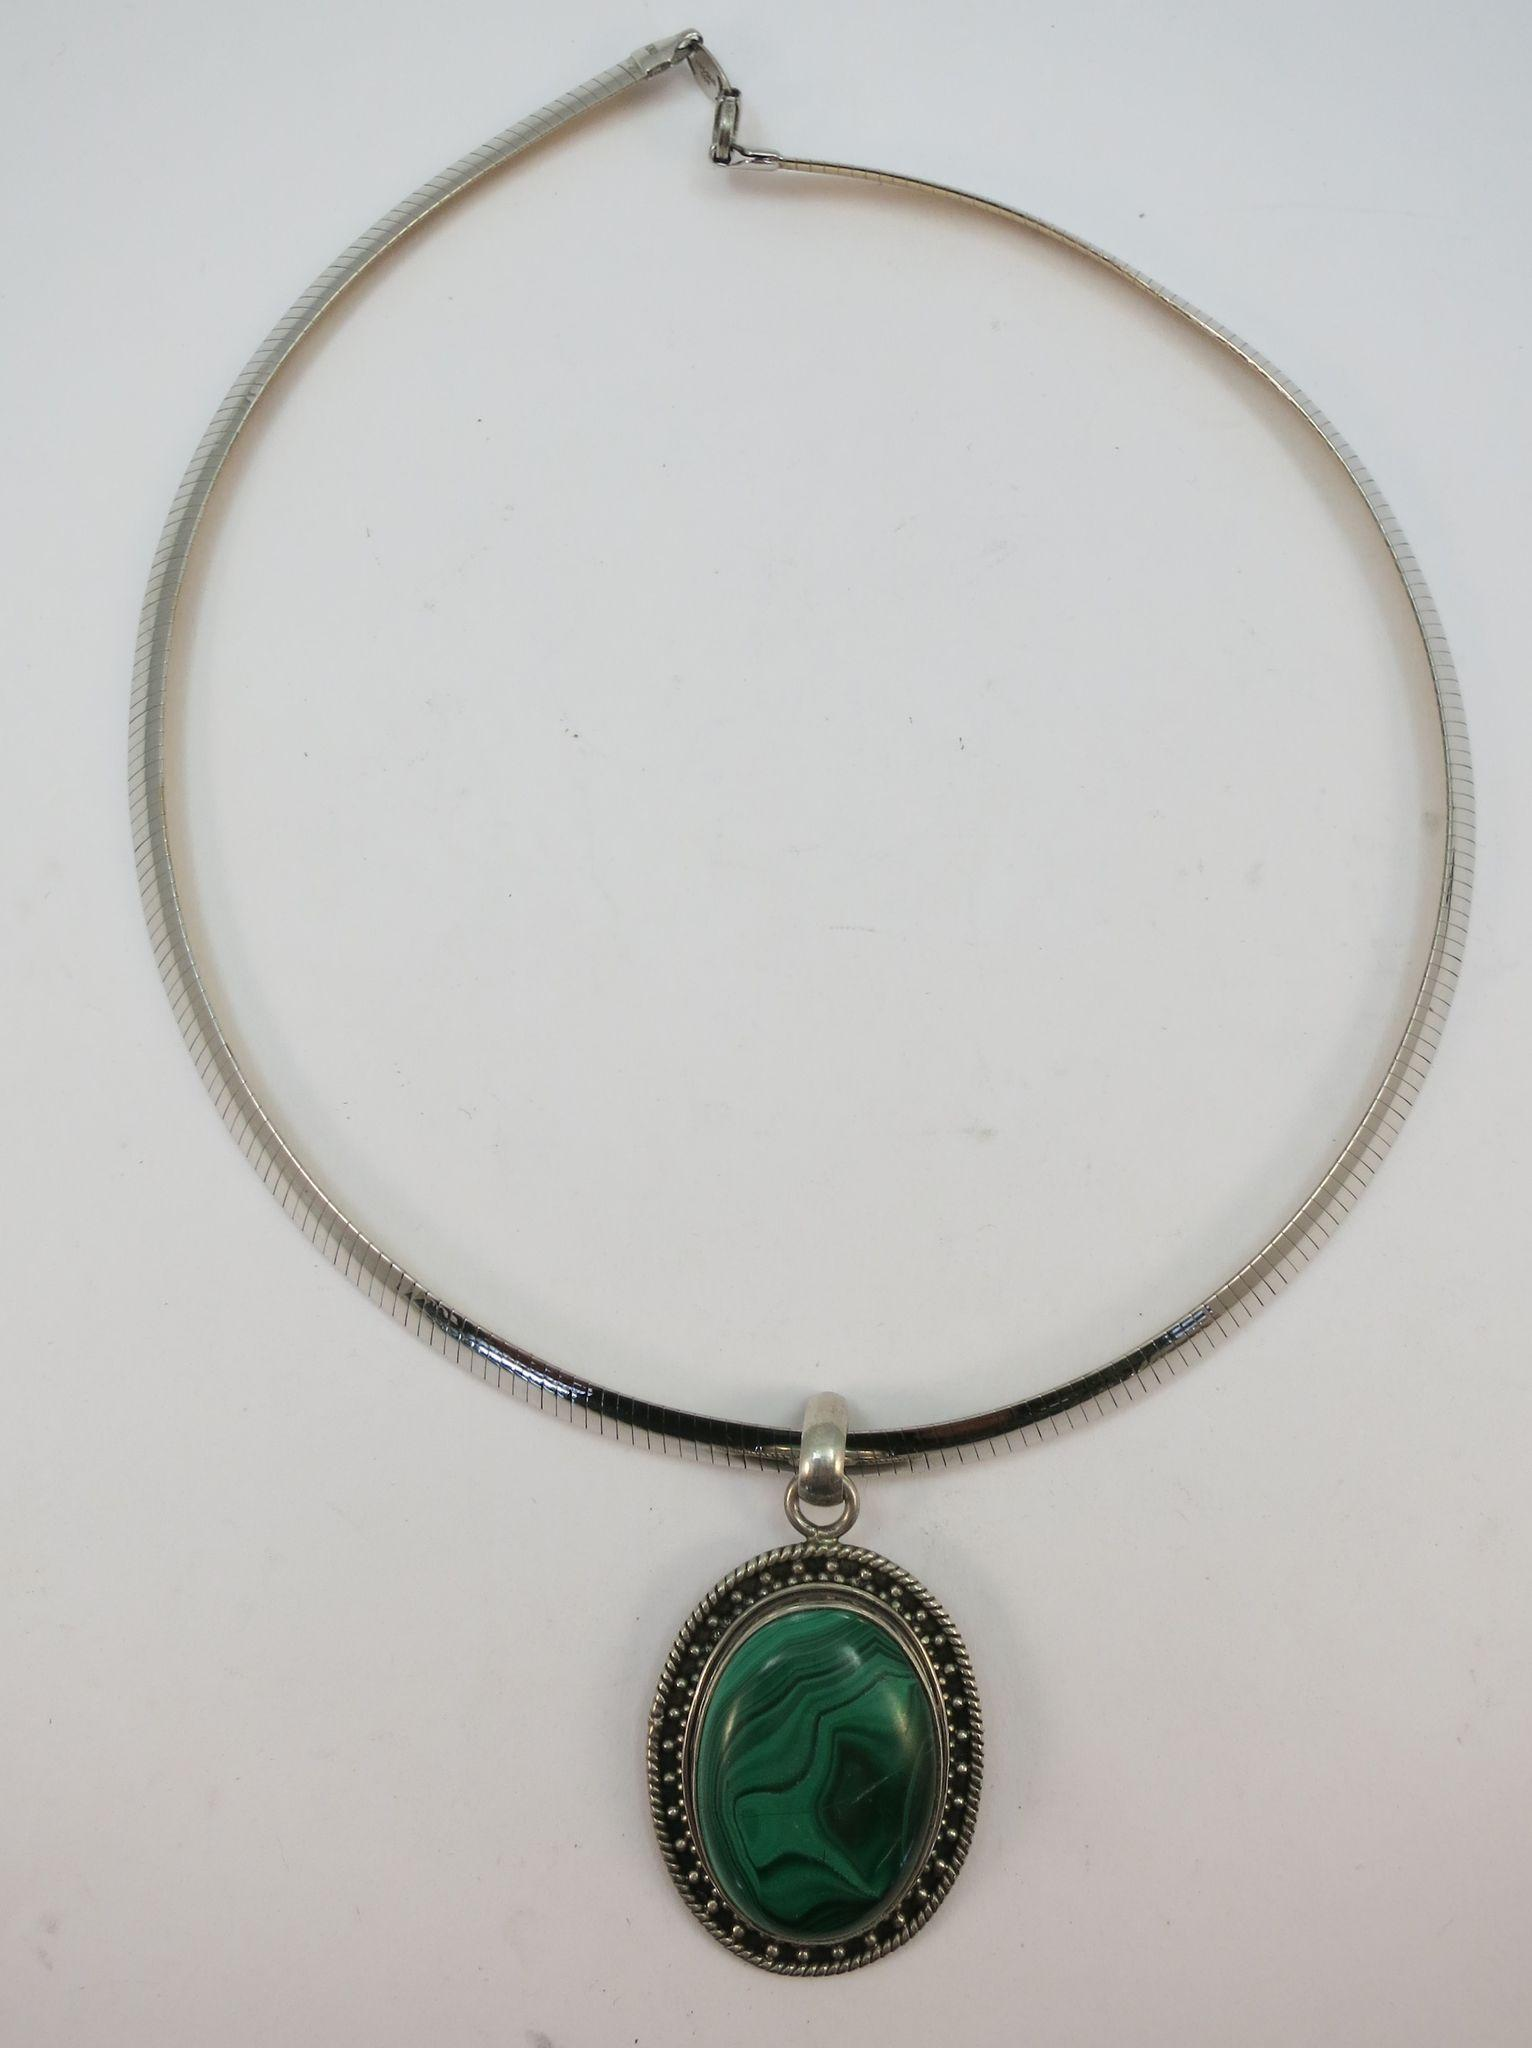 VINTAGE Reversible Silver and Gold Clad Omega Necklace with Malachite Pendant